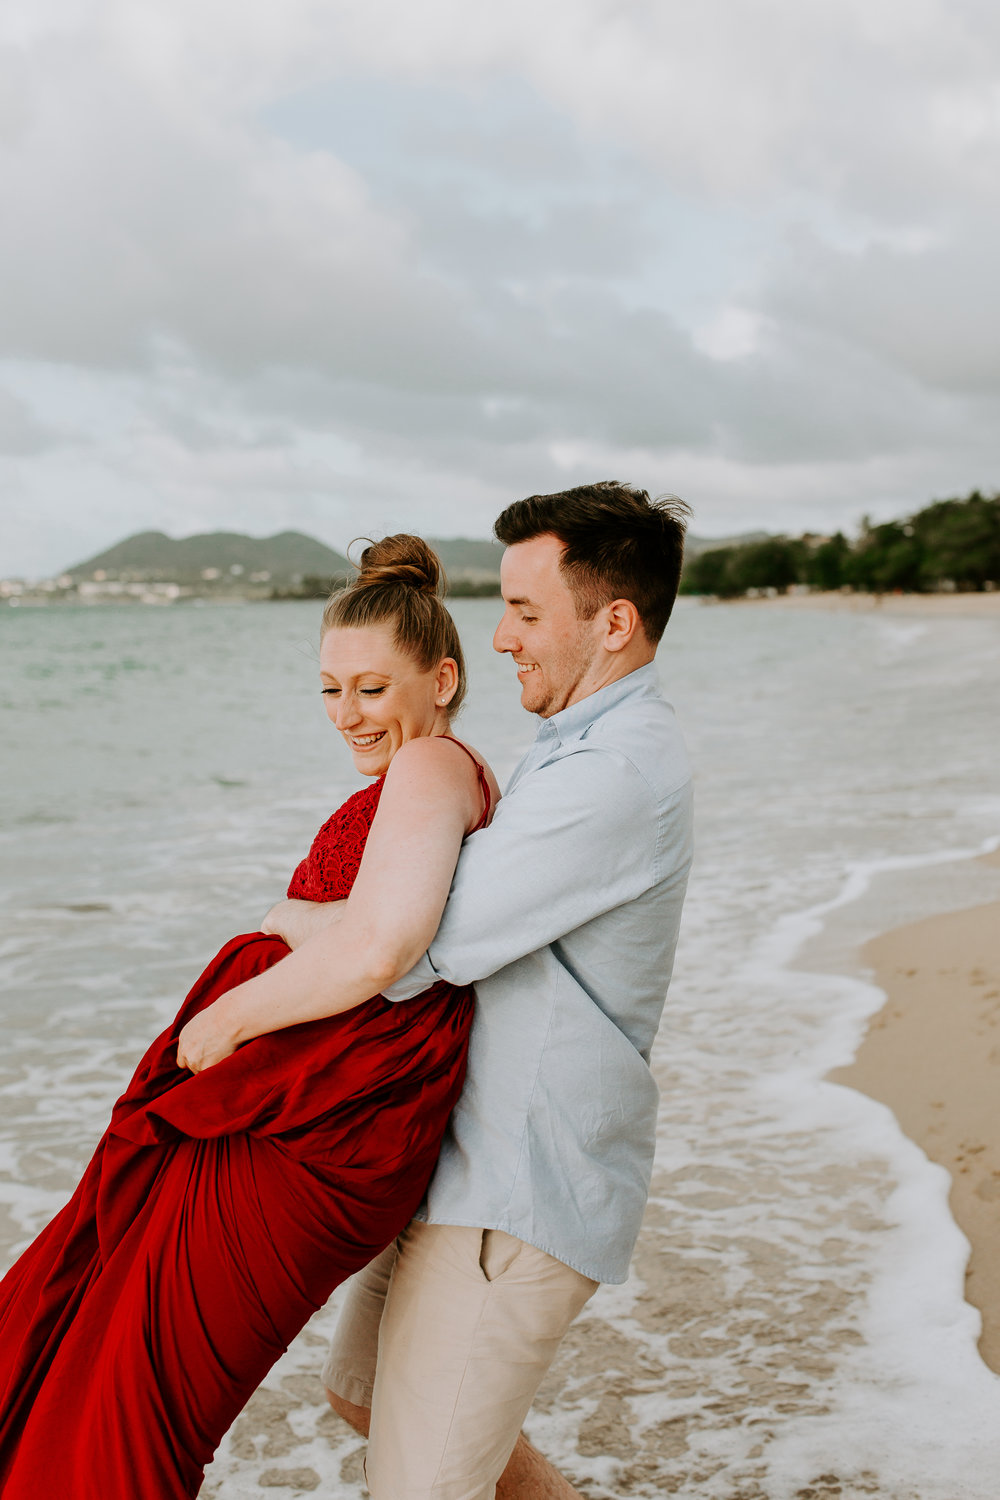 nicole-daacke-photography-st-lucia-destination-wedding-photographer-day-after-session-castries-sandals-resort-adventure-island-engagement-soufriere-piton-adventure-session-photos-photographer-46.jpg